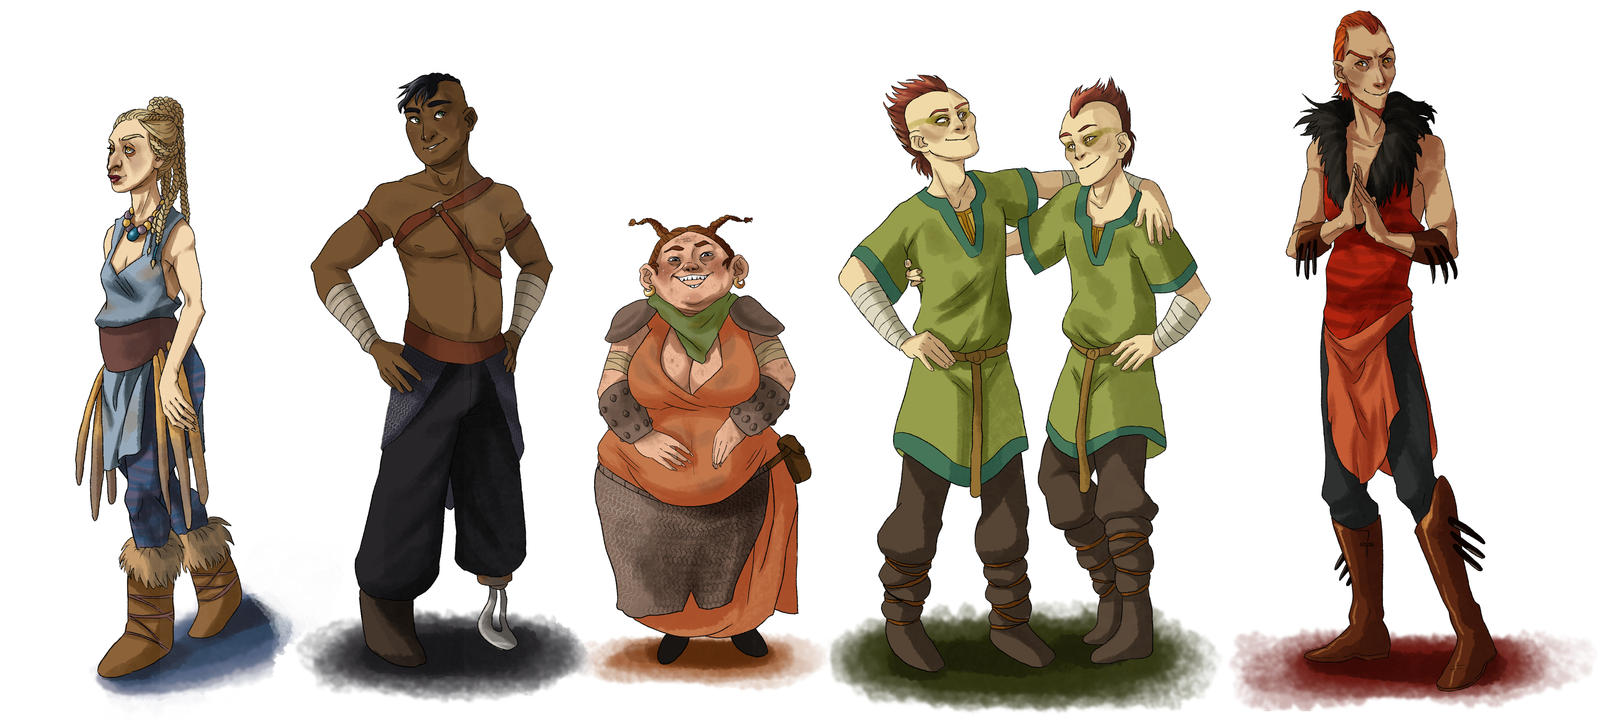 Human Dragons by fUnKyToEs on DeviantArt